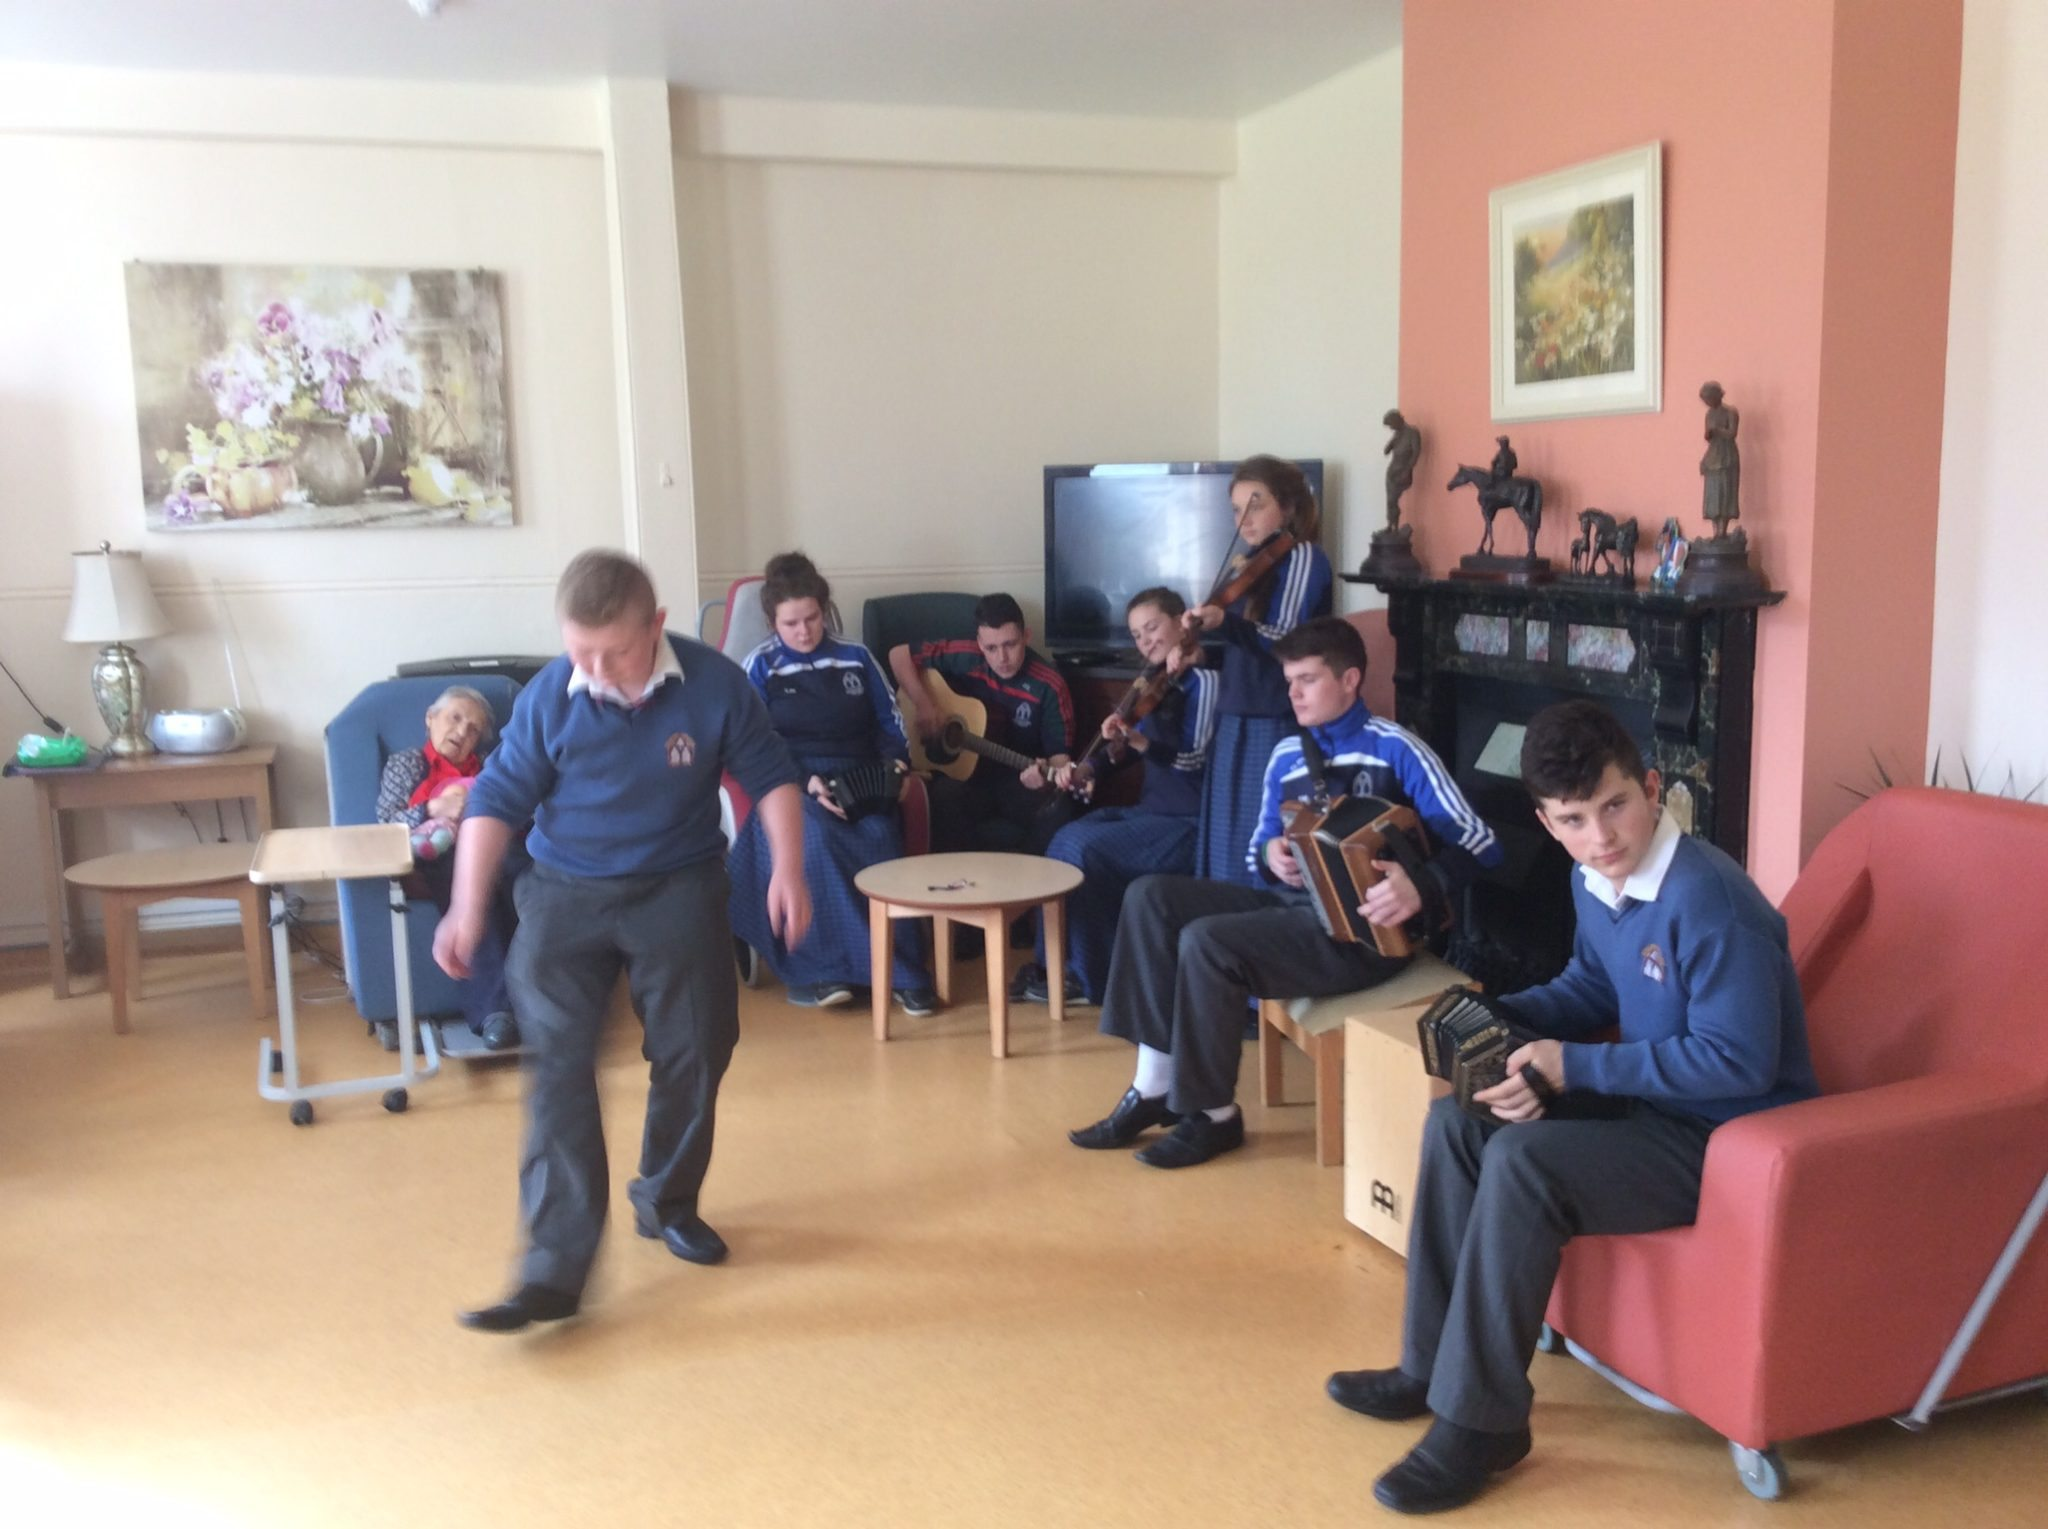 2015 October: Desmond College student takes to the floor, with music by the Trad Group, to entertain at Positive Aging Week